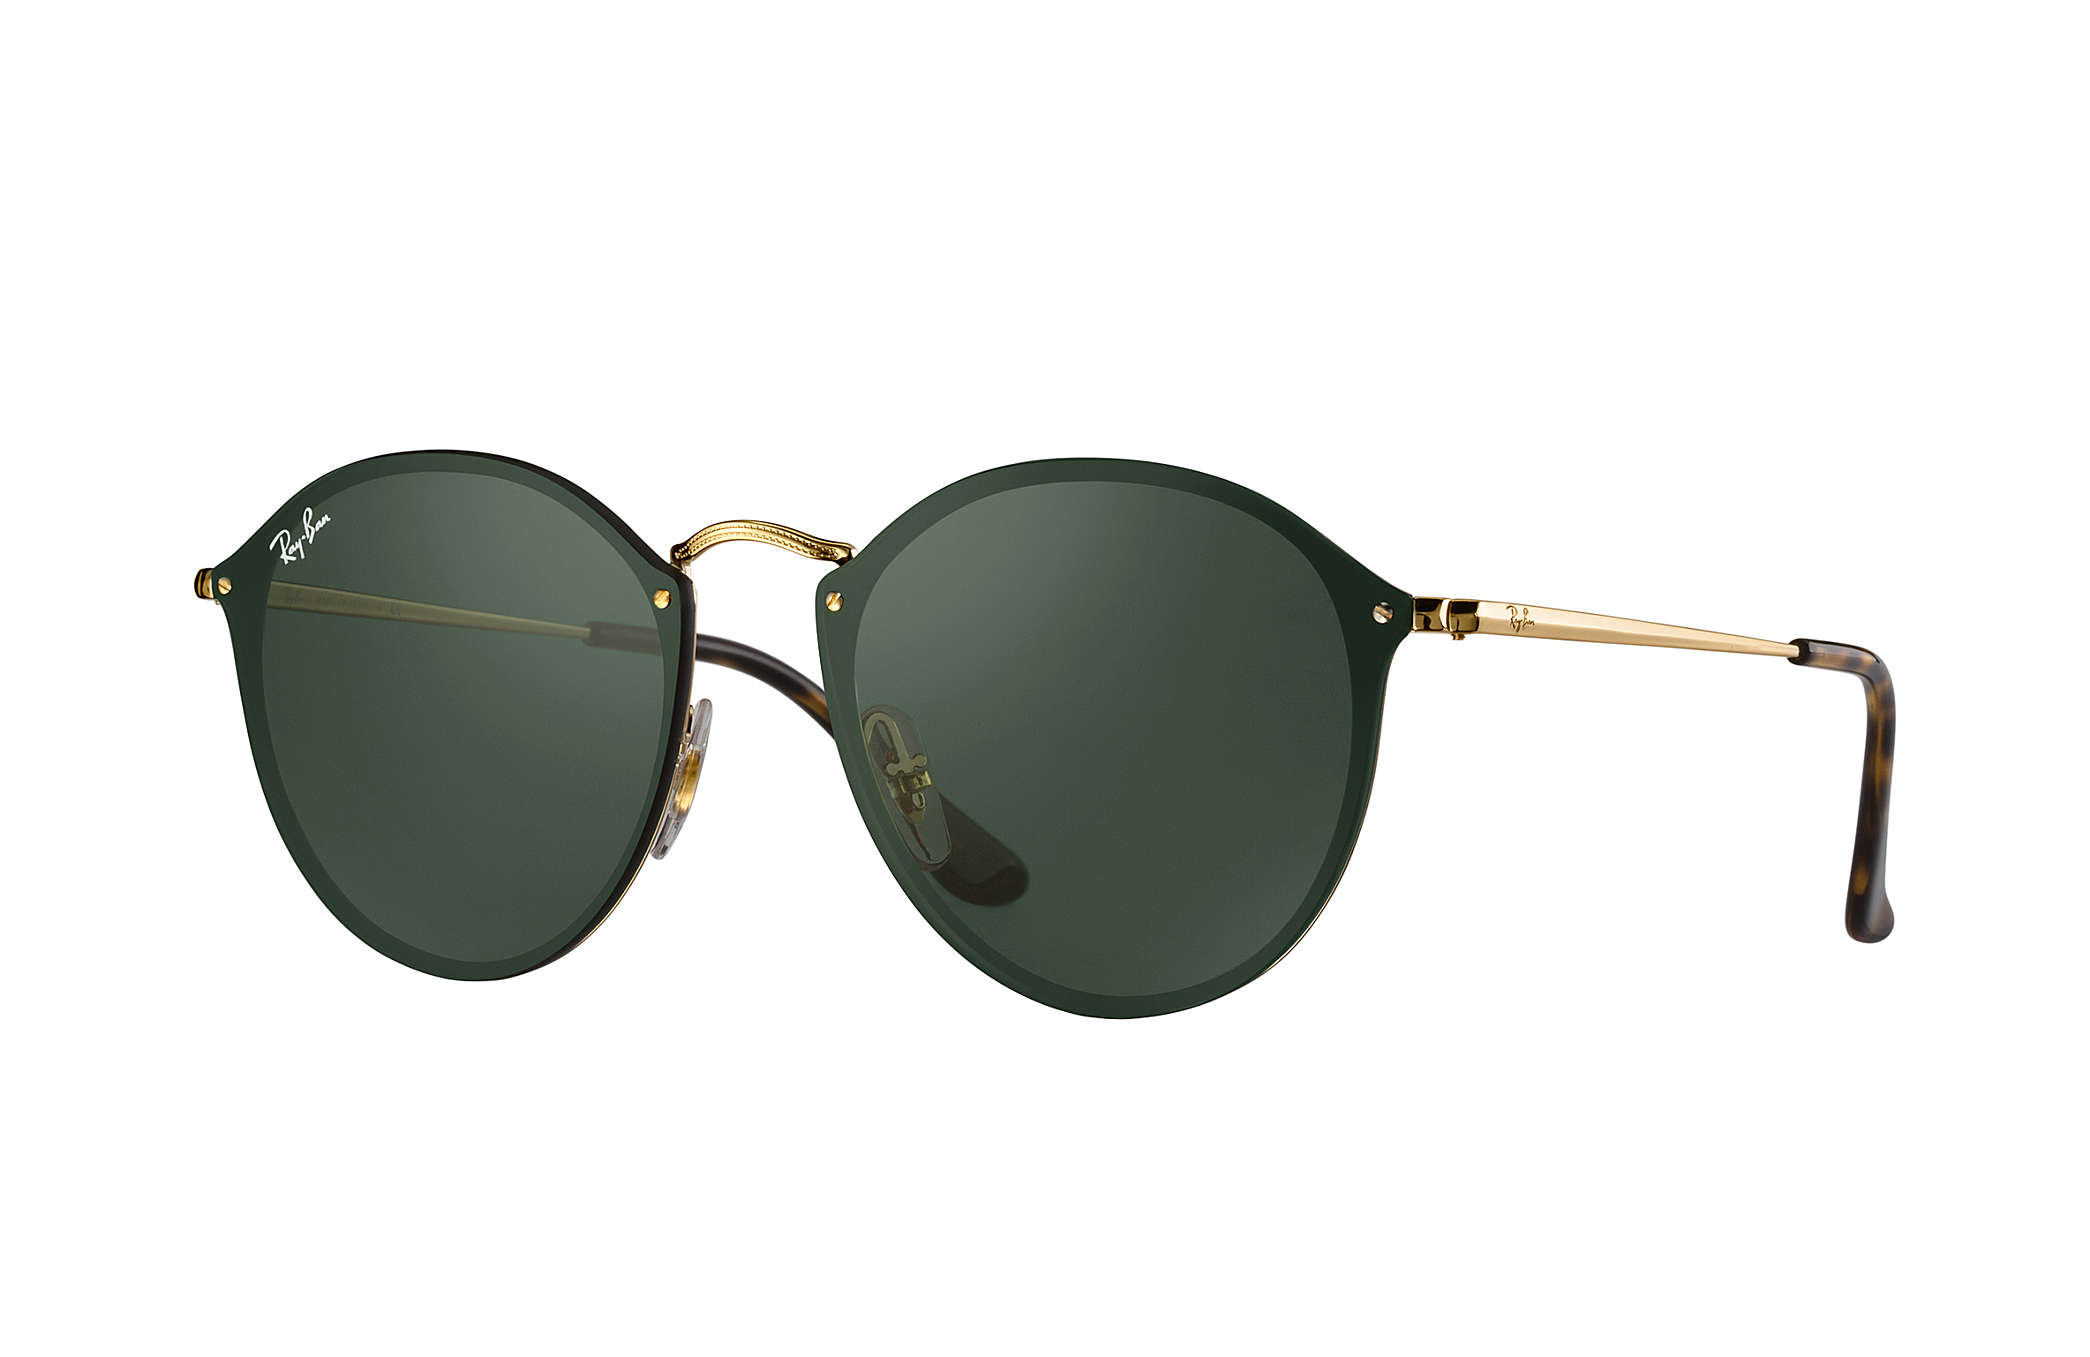 0e82ffa68b1fd Details about New Ray Ban RB3574N-001 71-59 Gold   Green Classic 59mm  Sunglasses